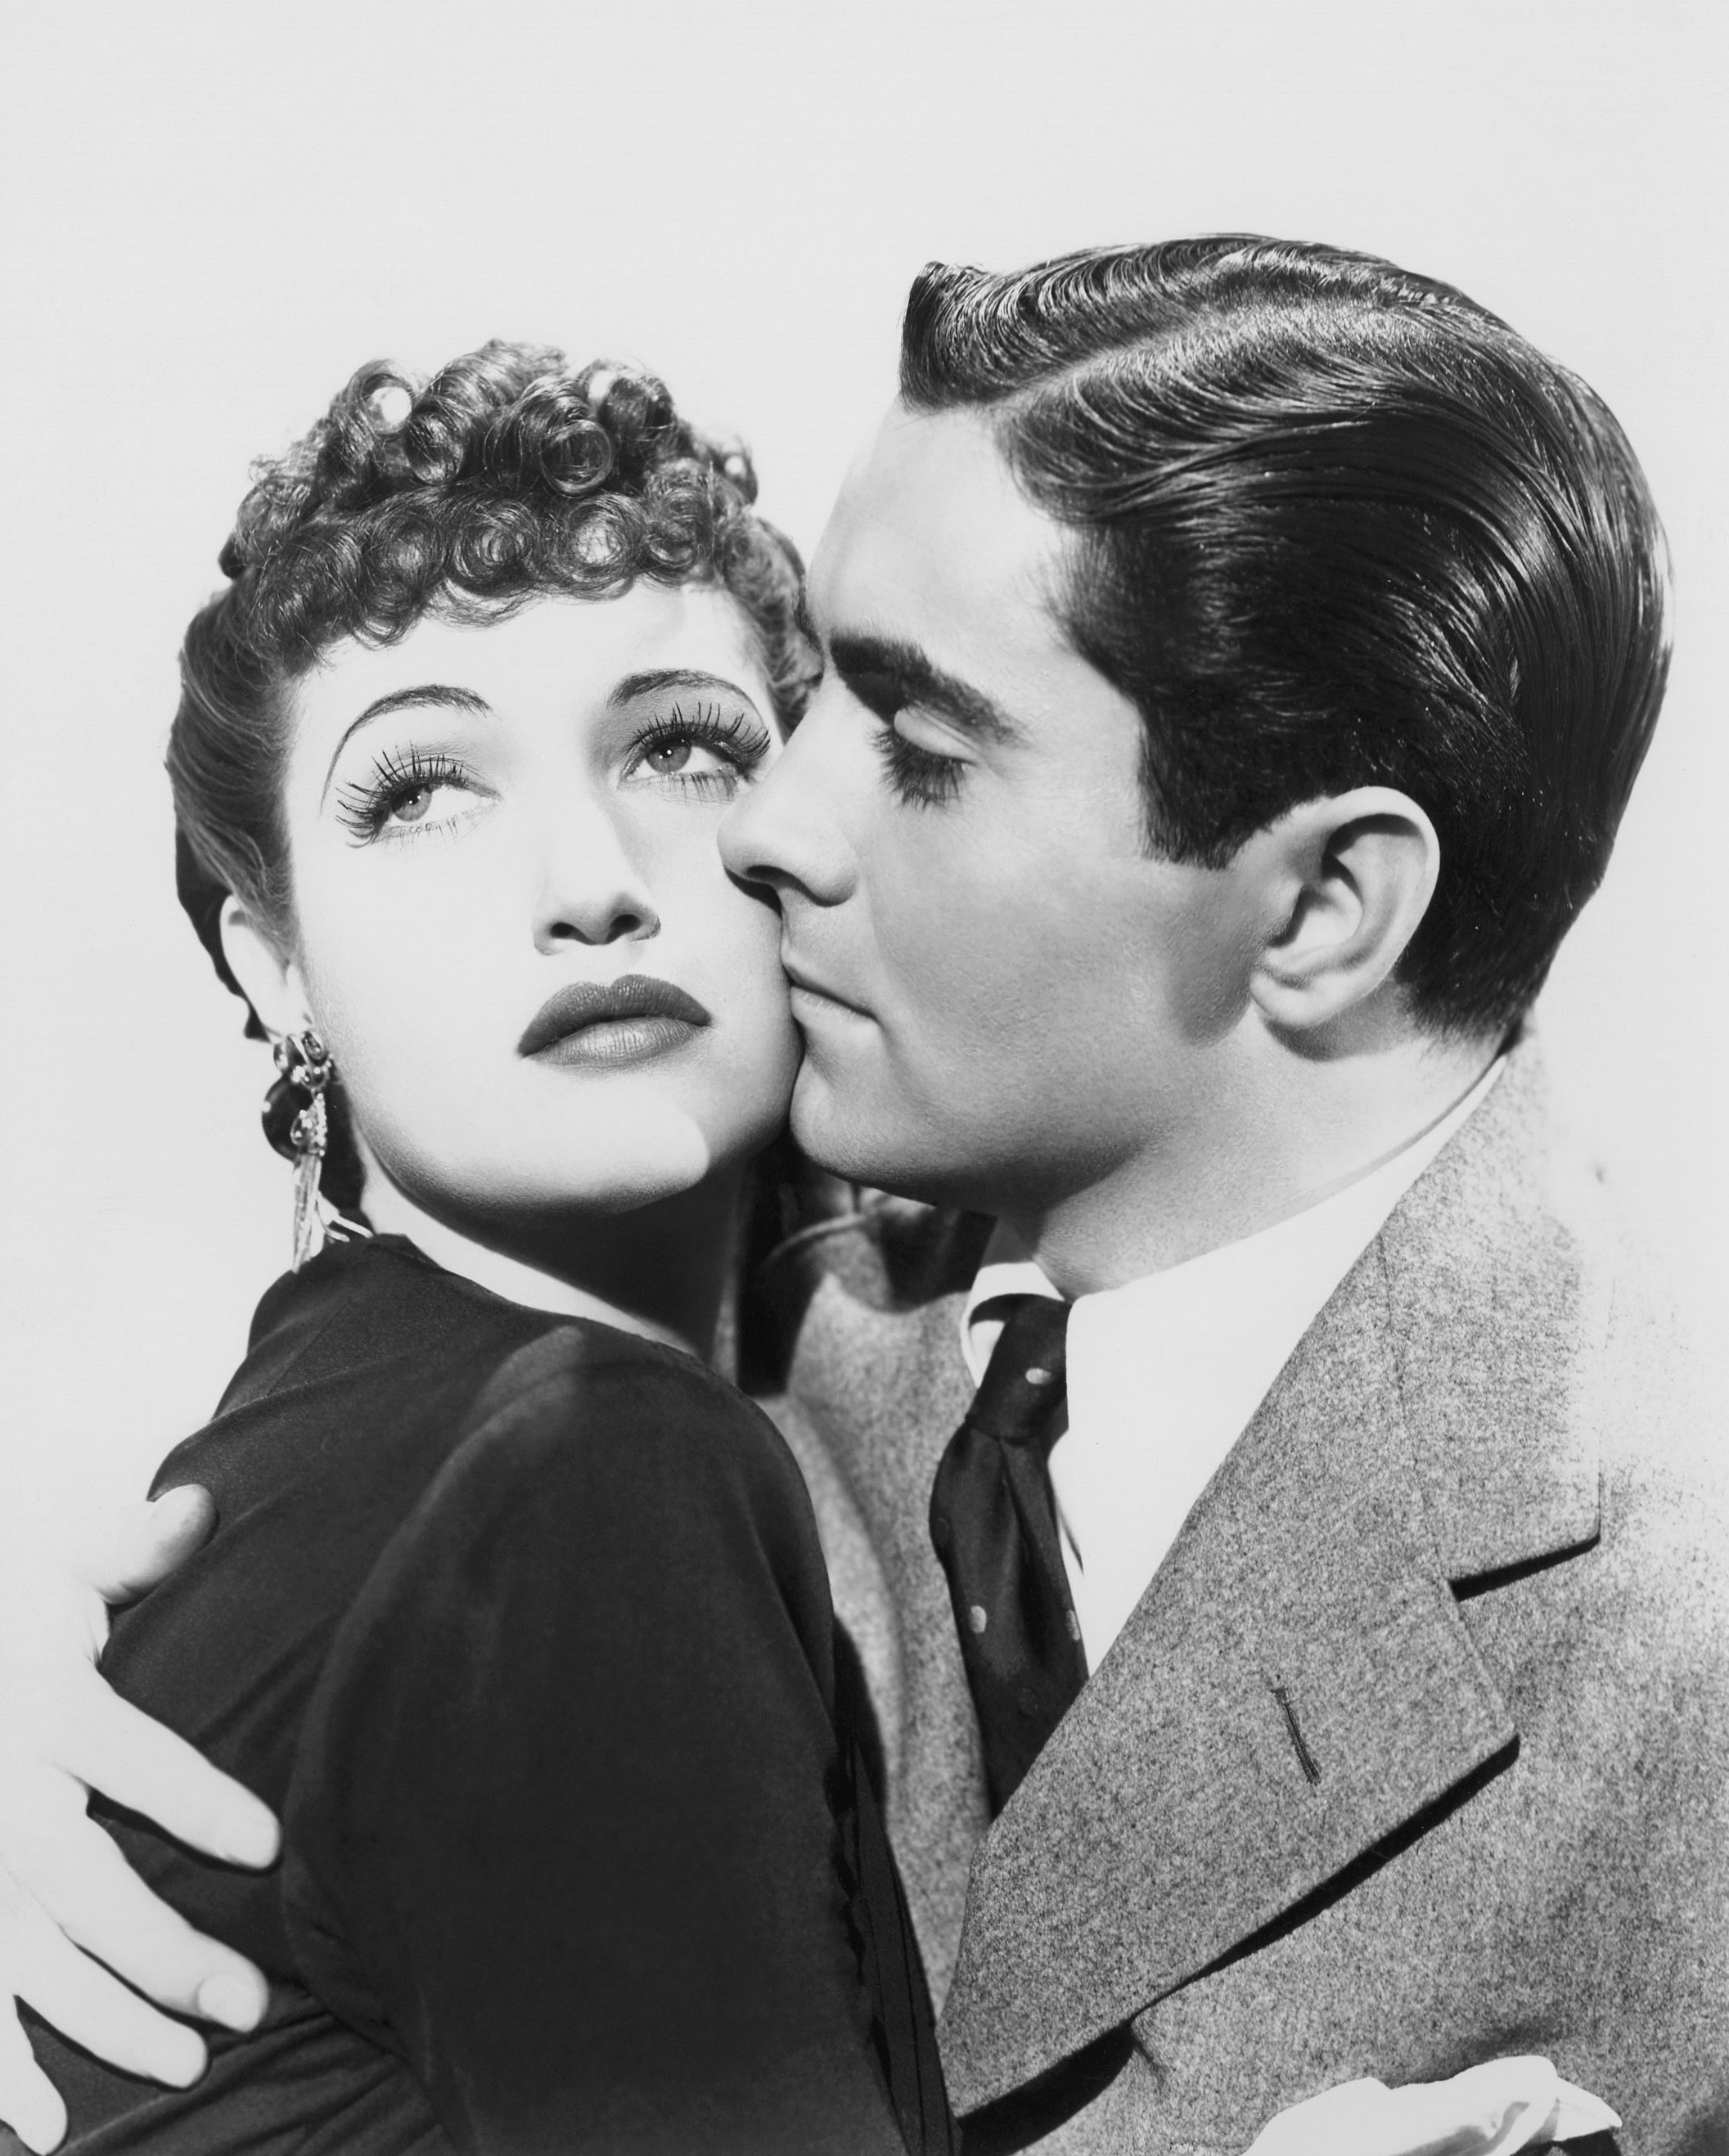 Tyrone Power, Jr. in Johnny Apollo With Dorothy Lamour